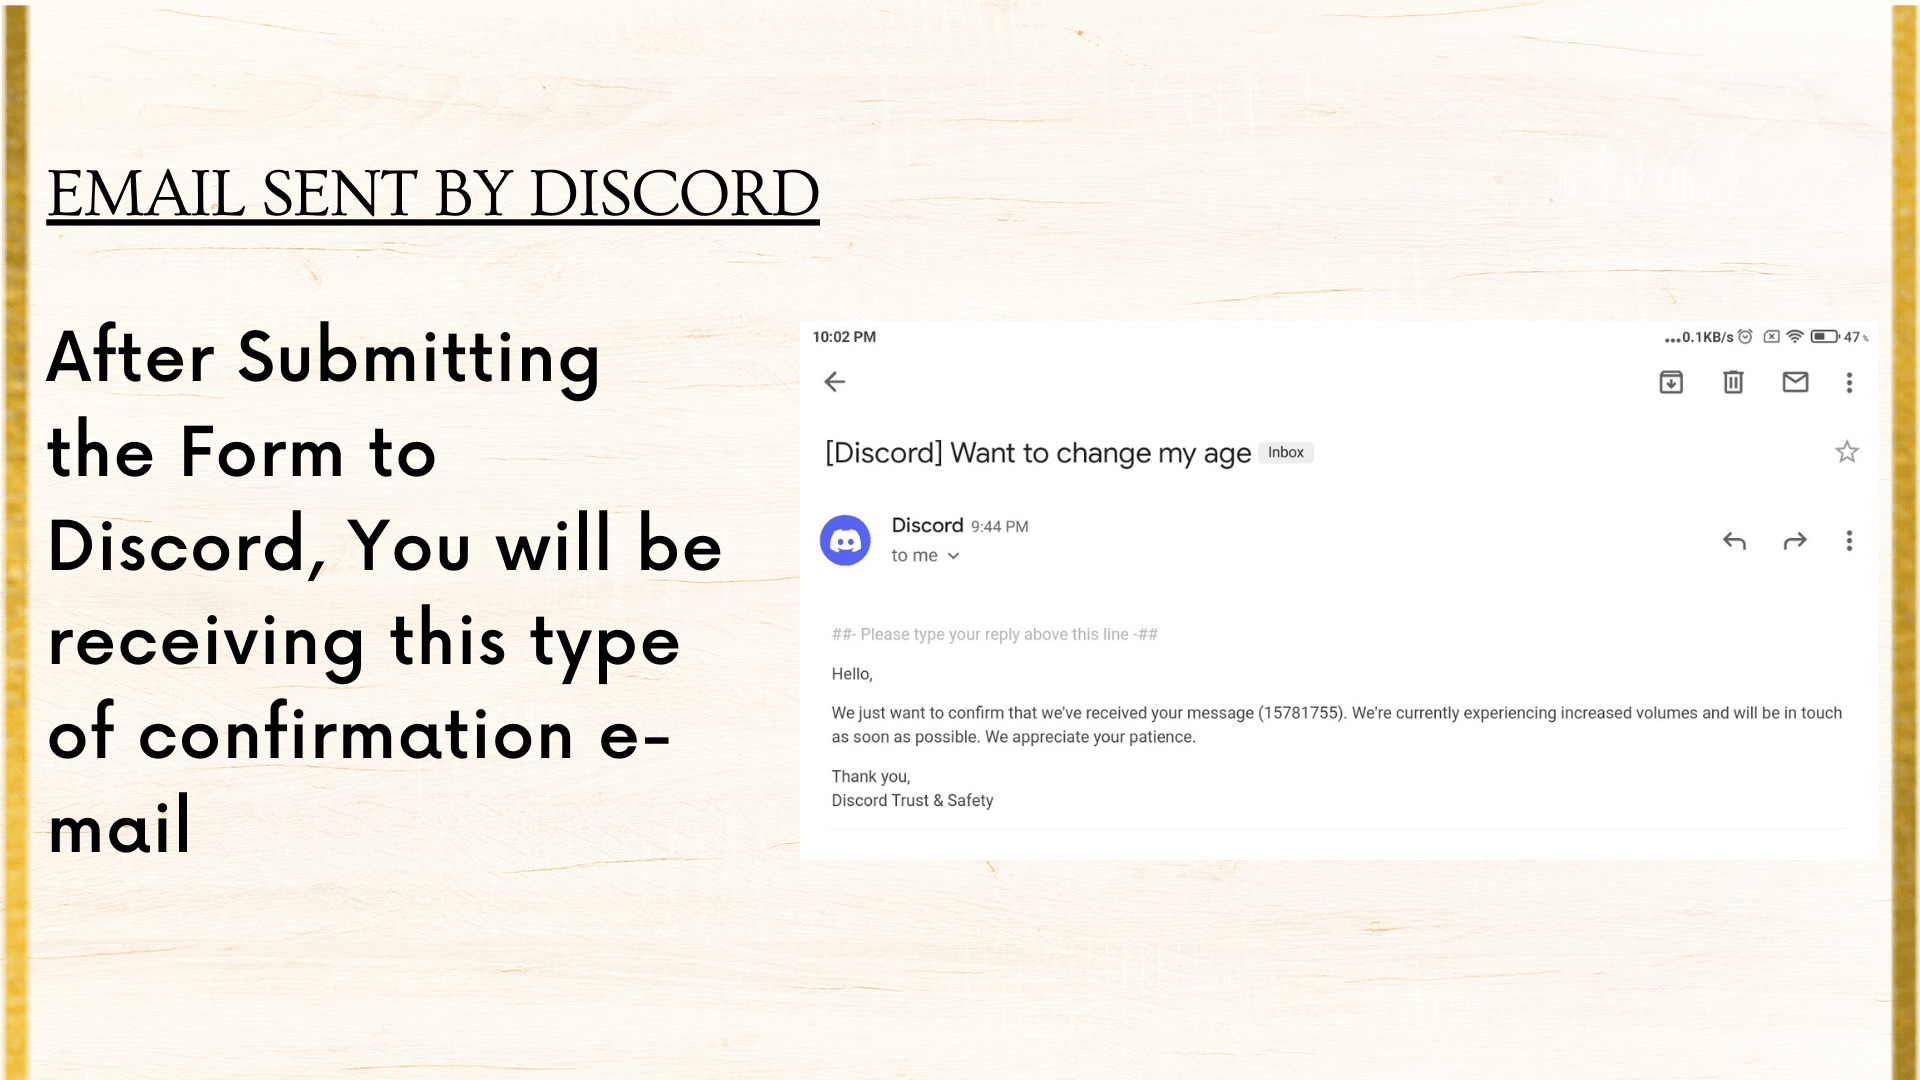 This is email sent by discord